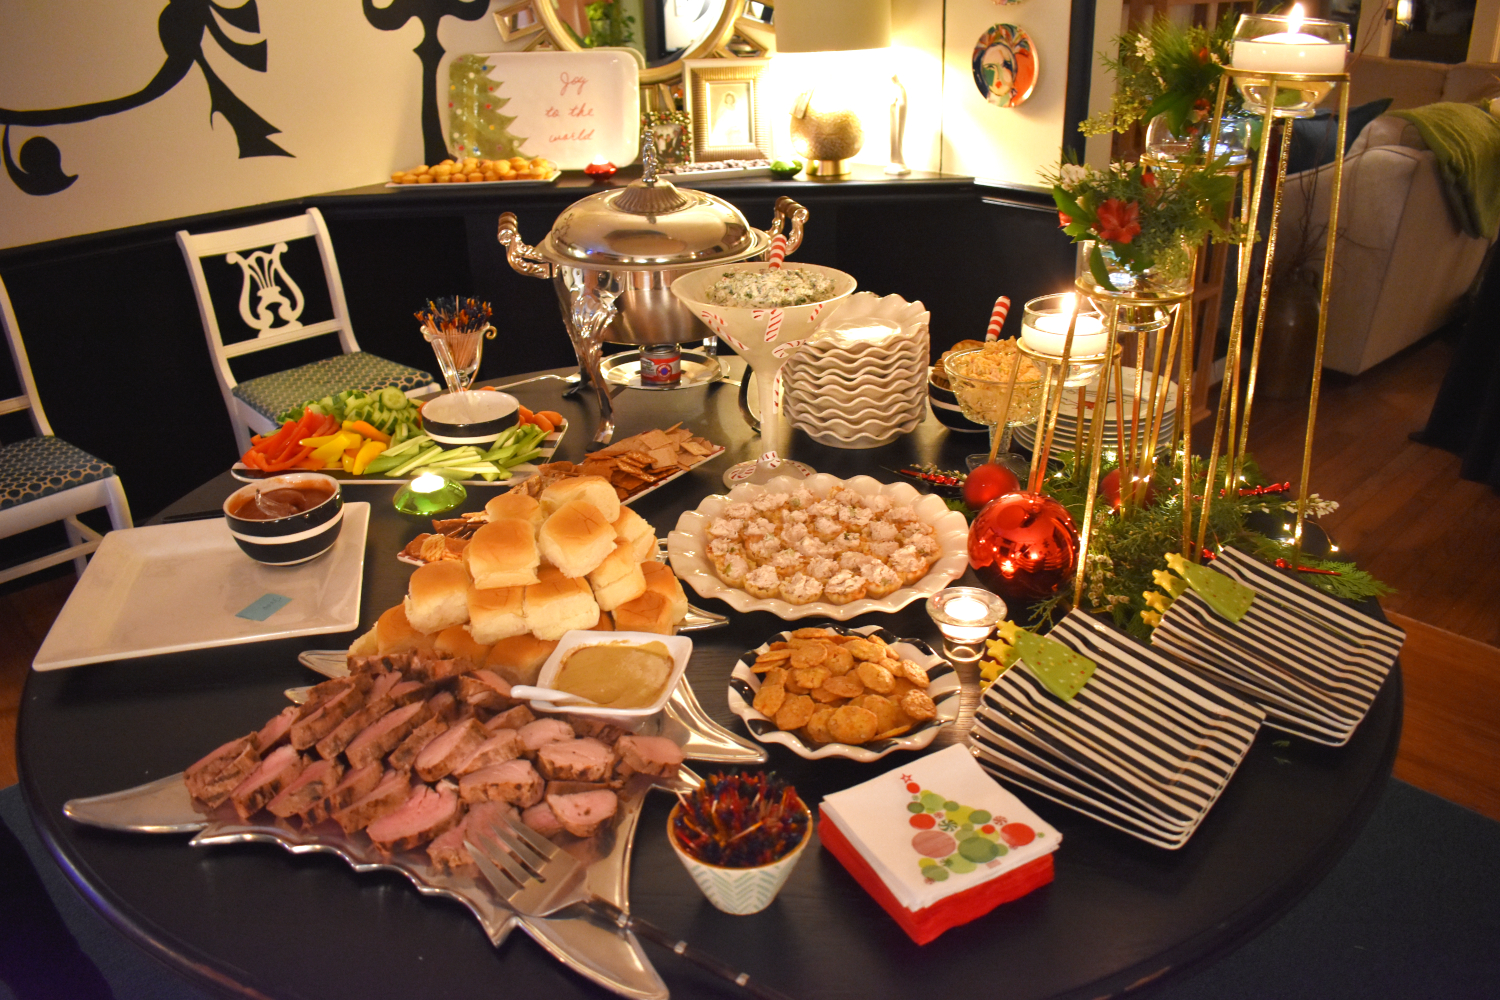 Party_table_setting2.JPG